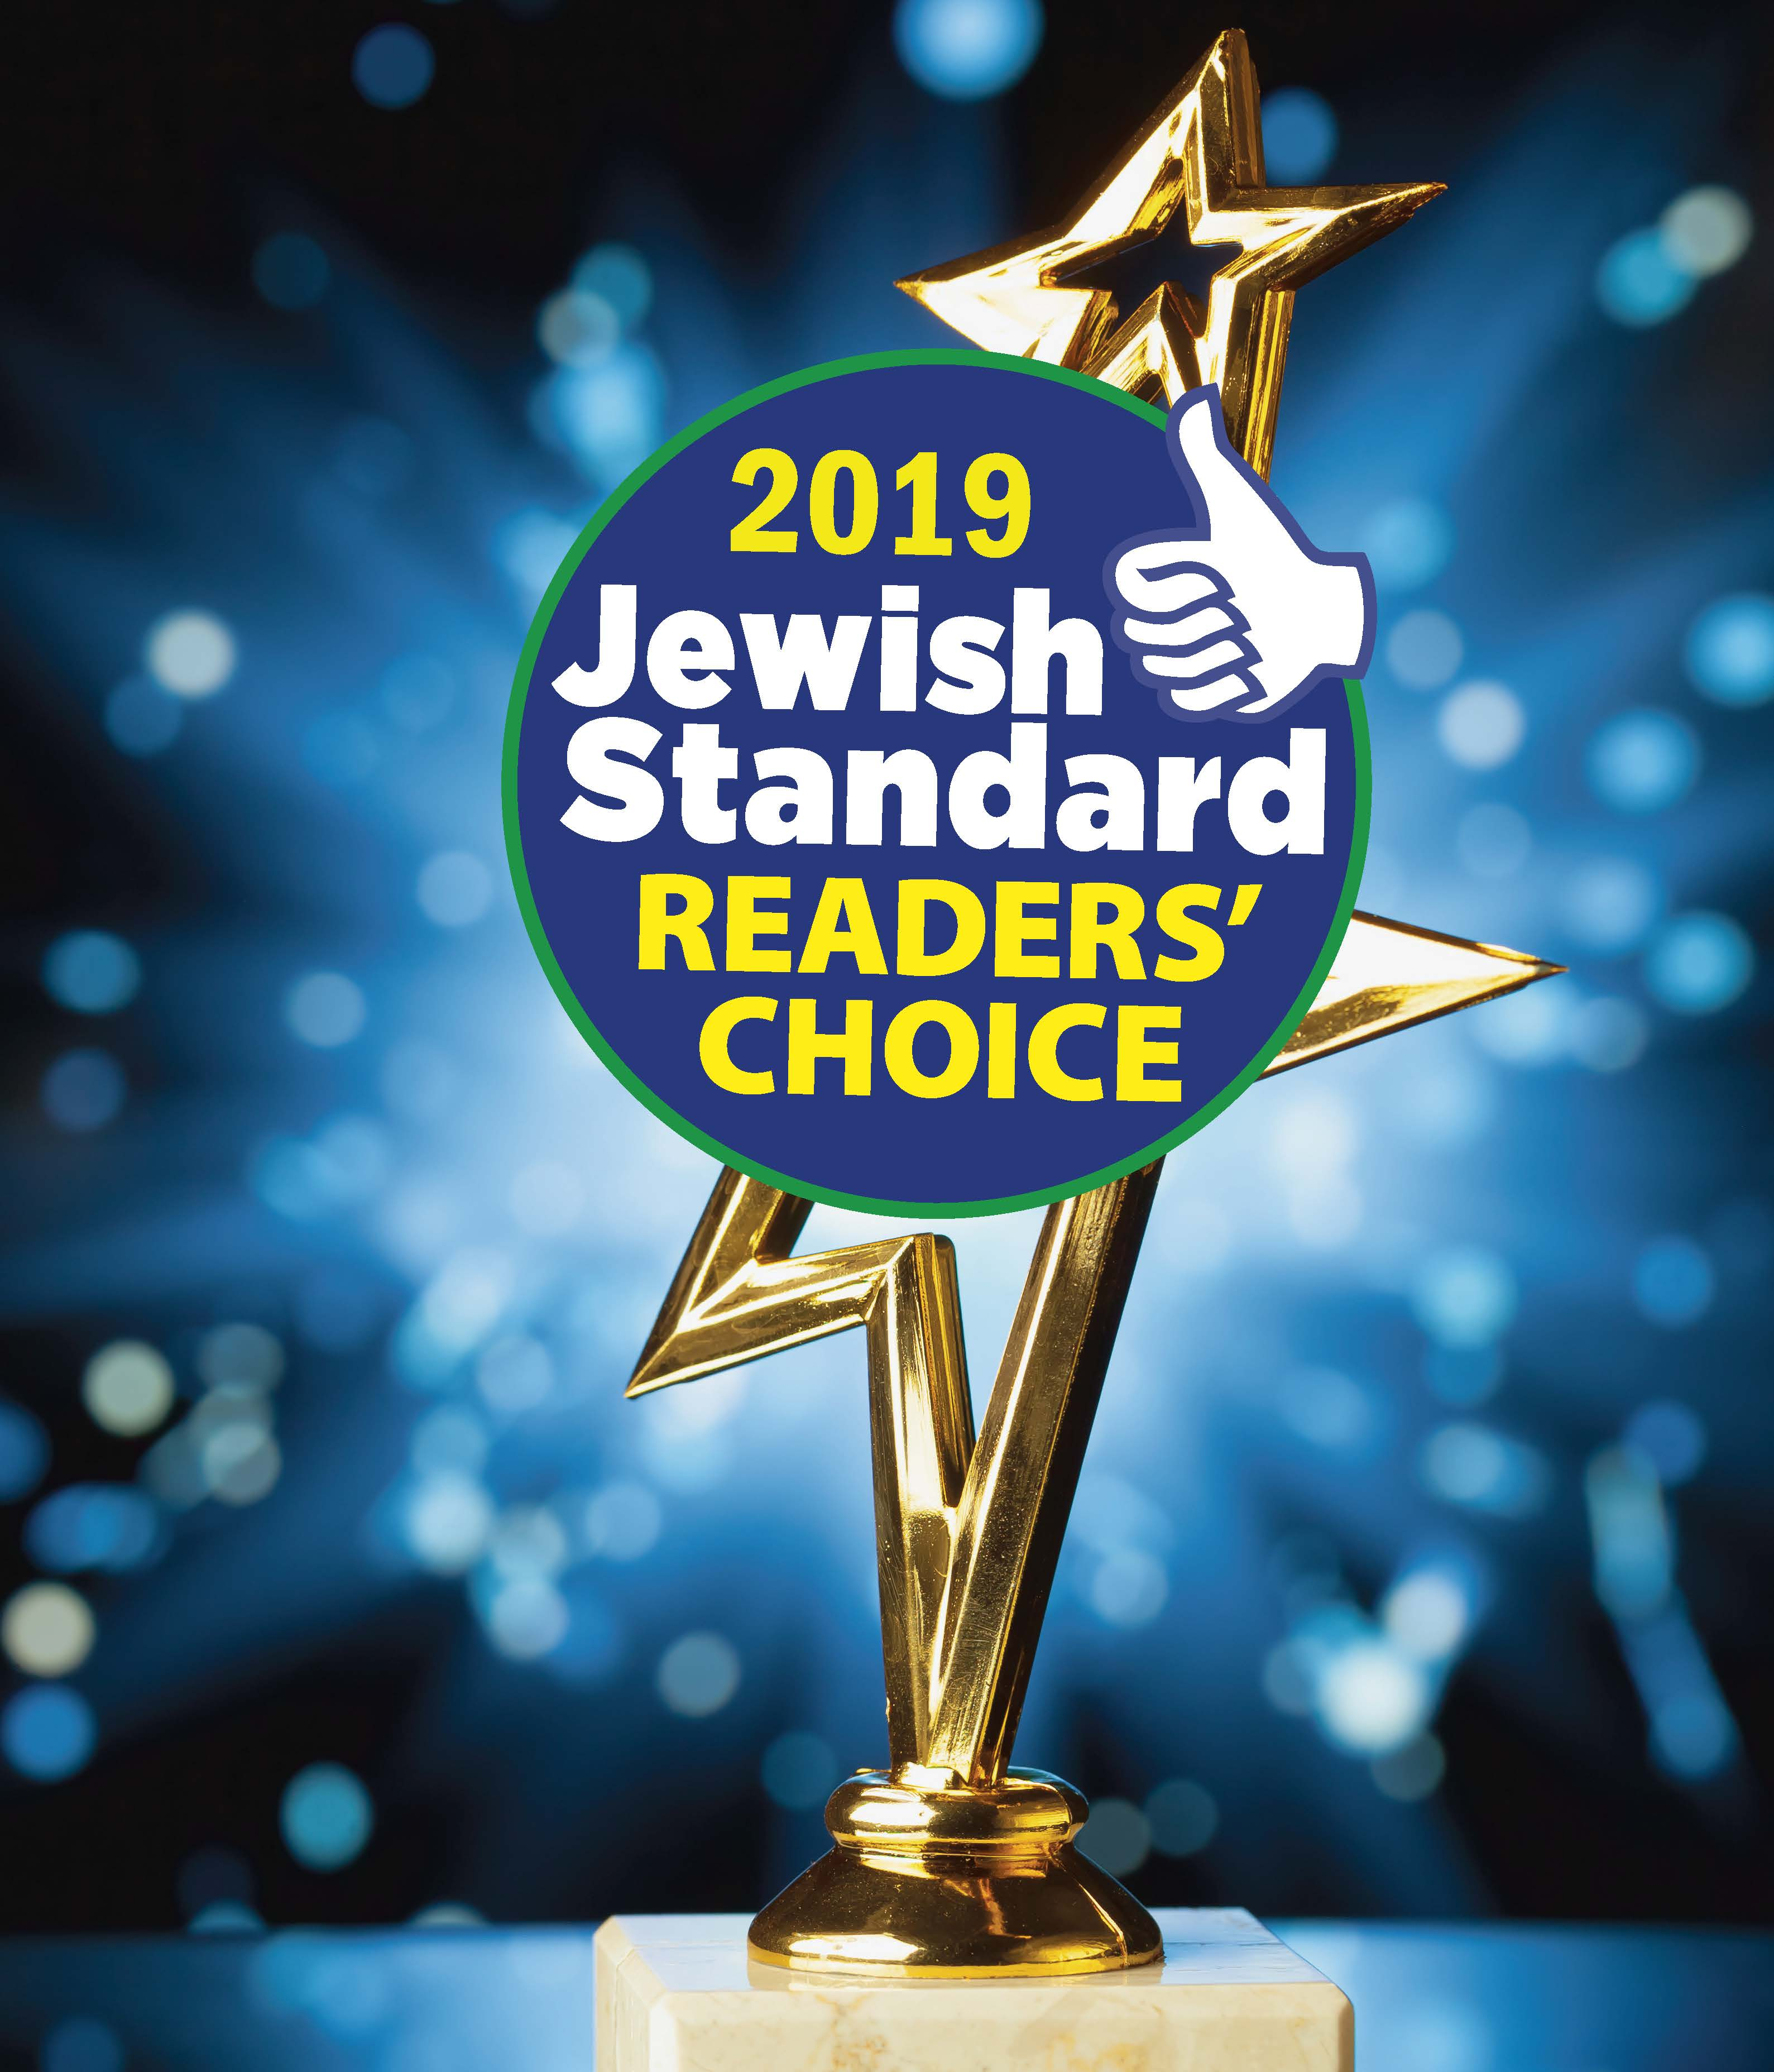 2019 Jewish Standard Readers' Choice